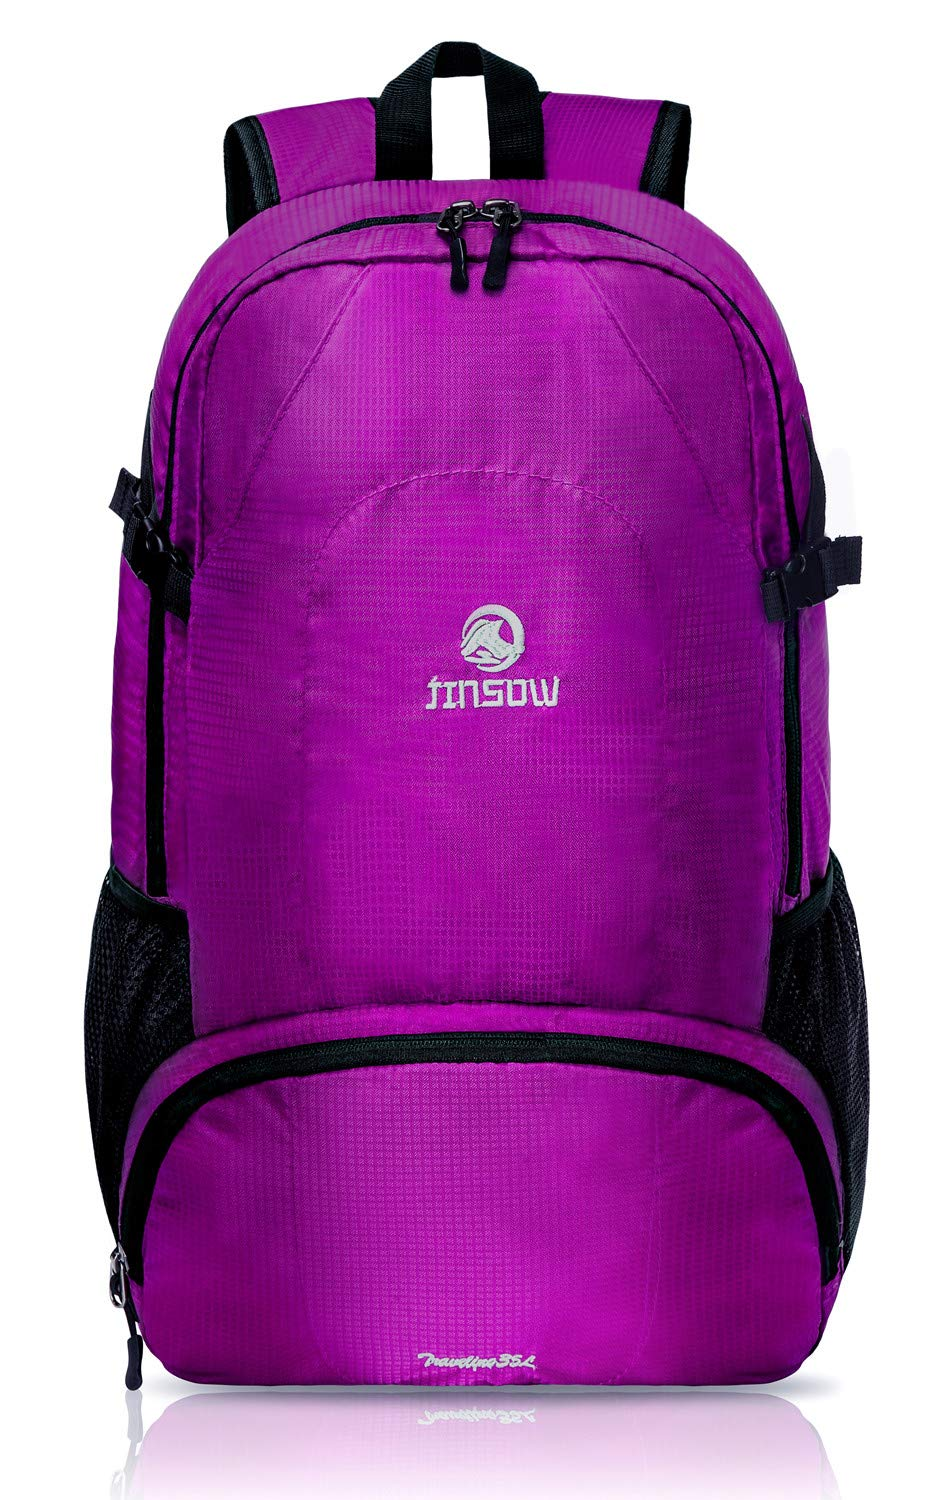 JINSOW 35L Lightweight Packable Hiking Backpack Daypack, Water Resistant Foldable Large Bags Travel Camping Outdoor Backpacks for Women Men Boys Girls Purple